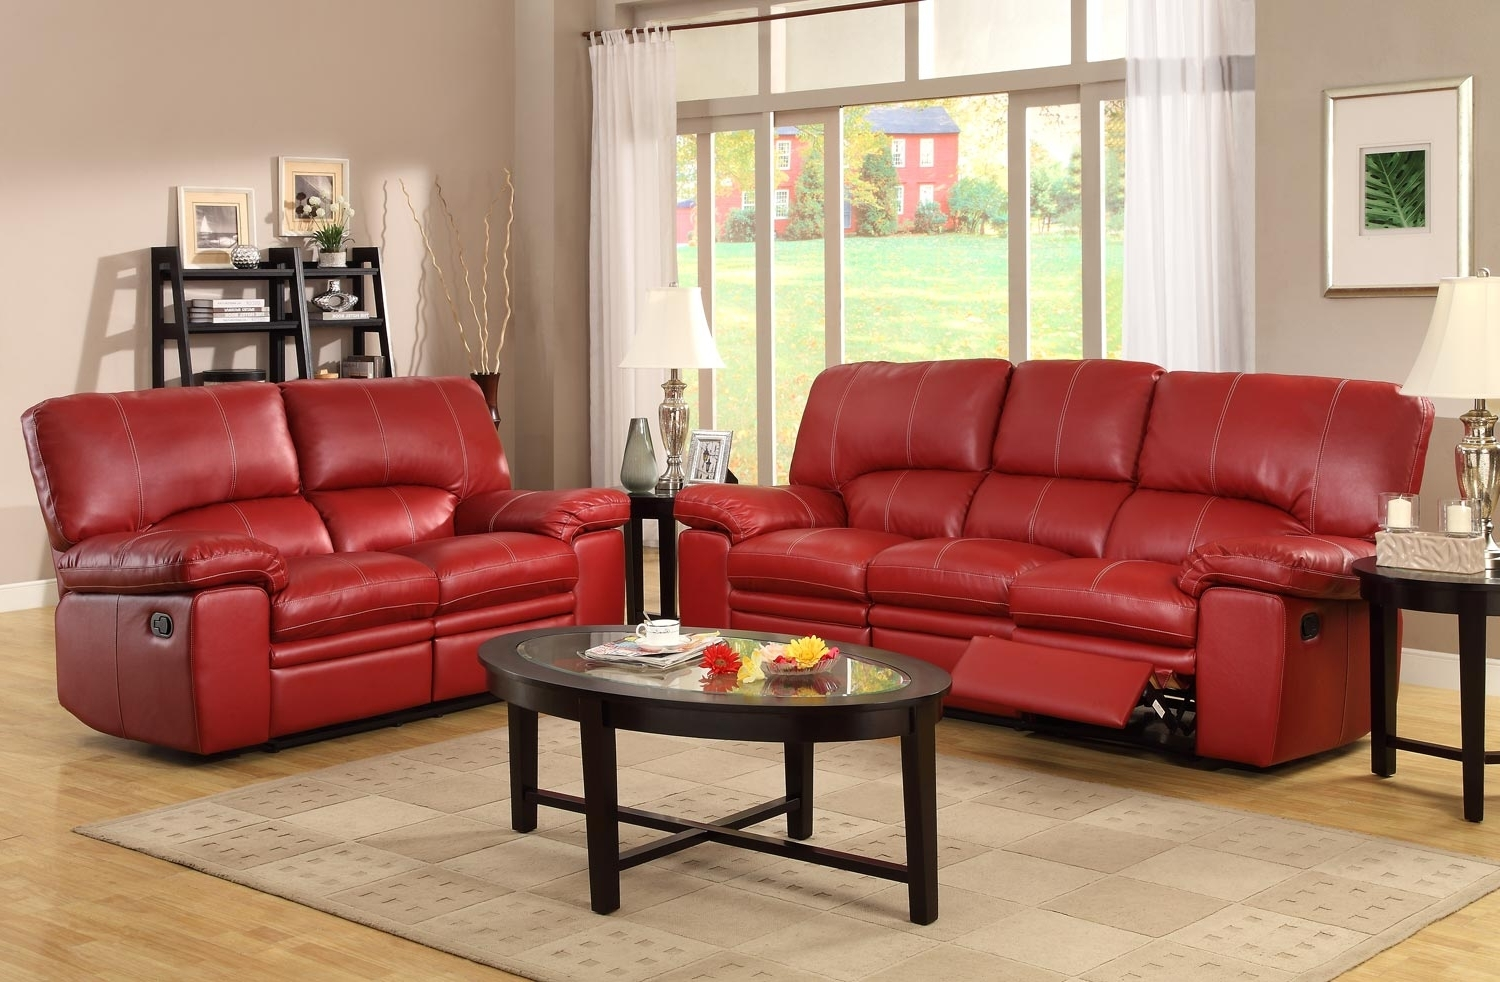 Preferred Red Leather Sofa Set Inside Great 75 In Living Room Ideas With Throughout Red Leather Reclining Sofas And Loveseats (View 4 of 20)